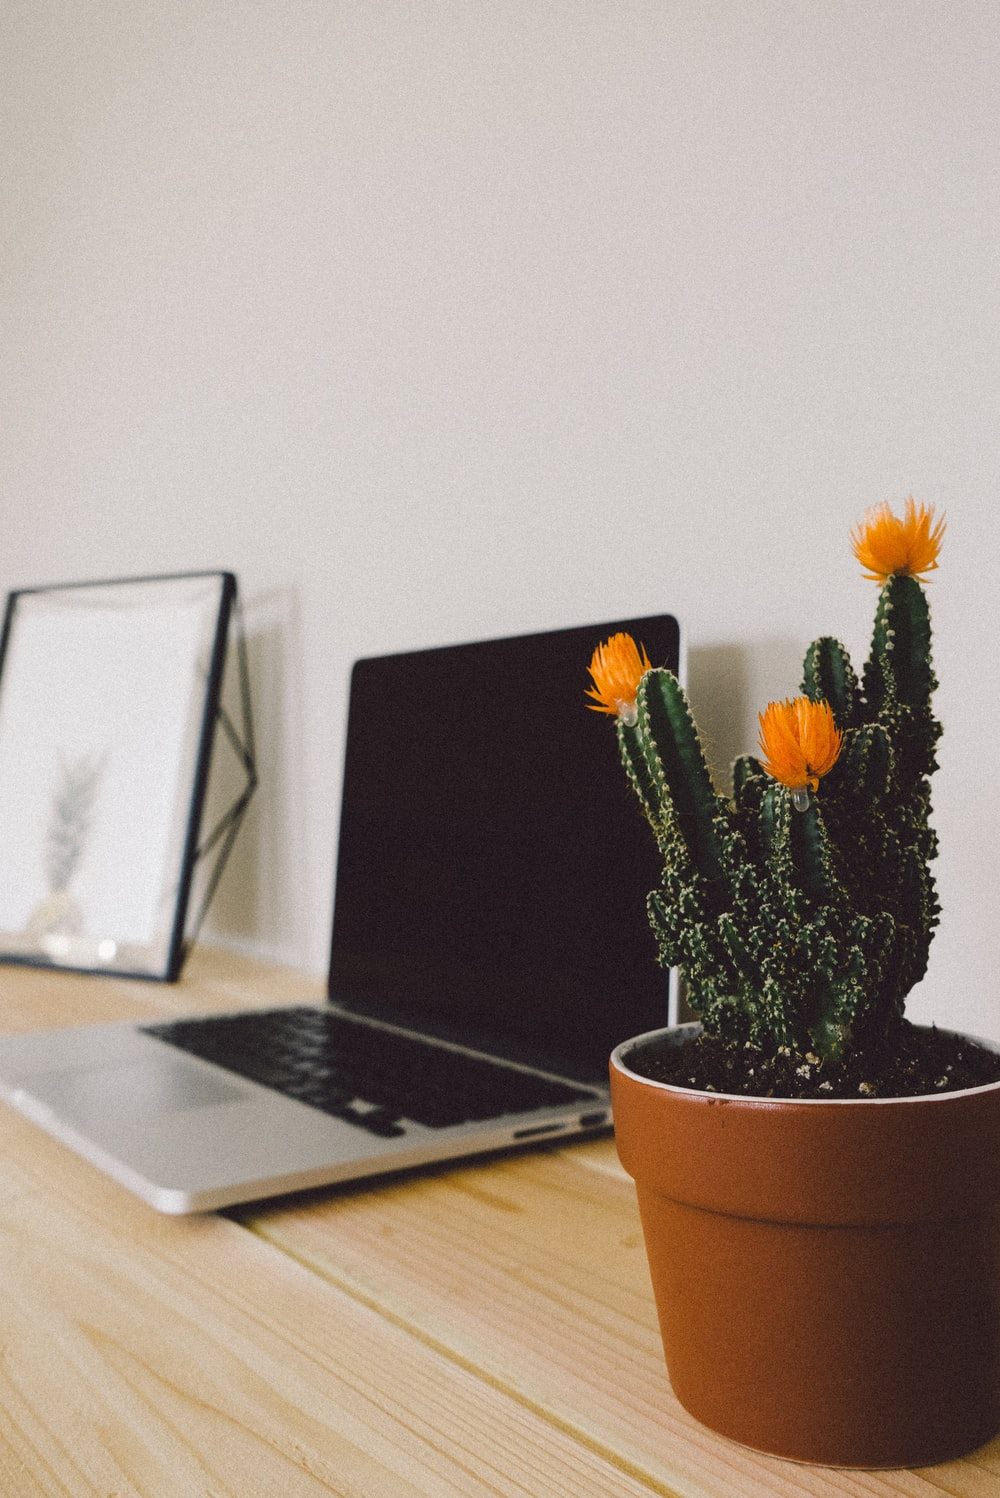 cactus beside laptop